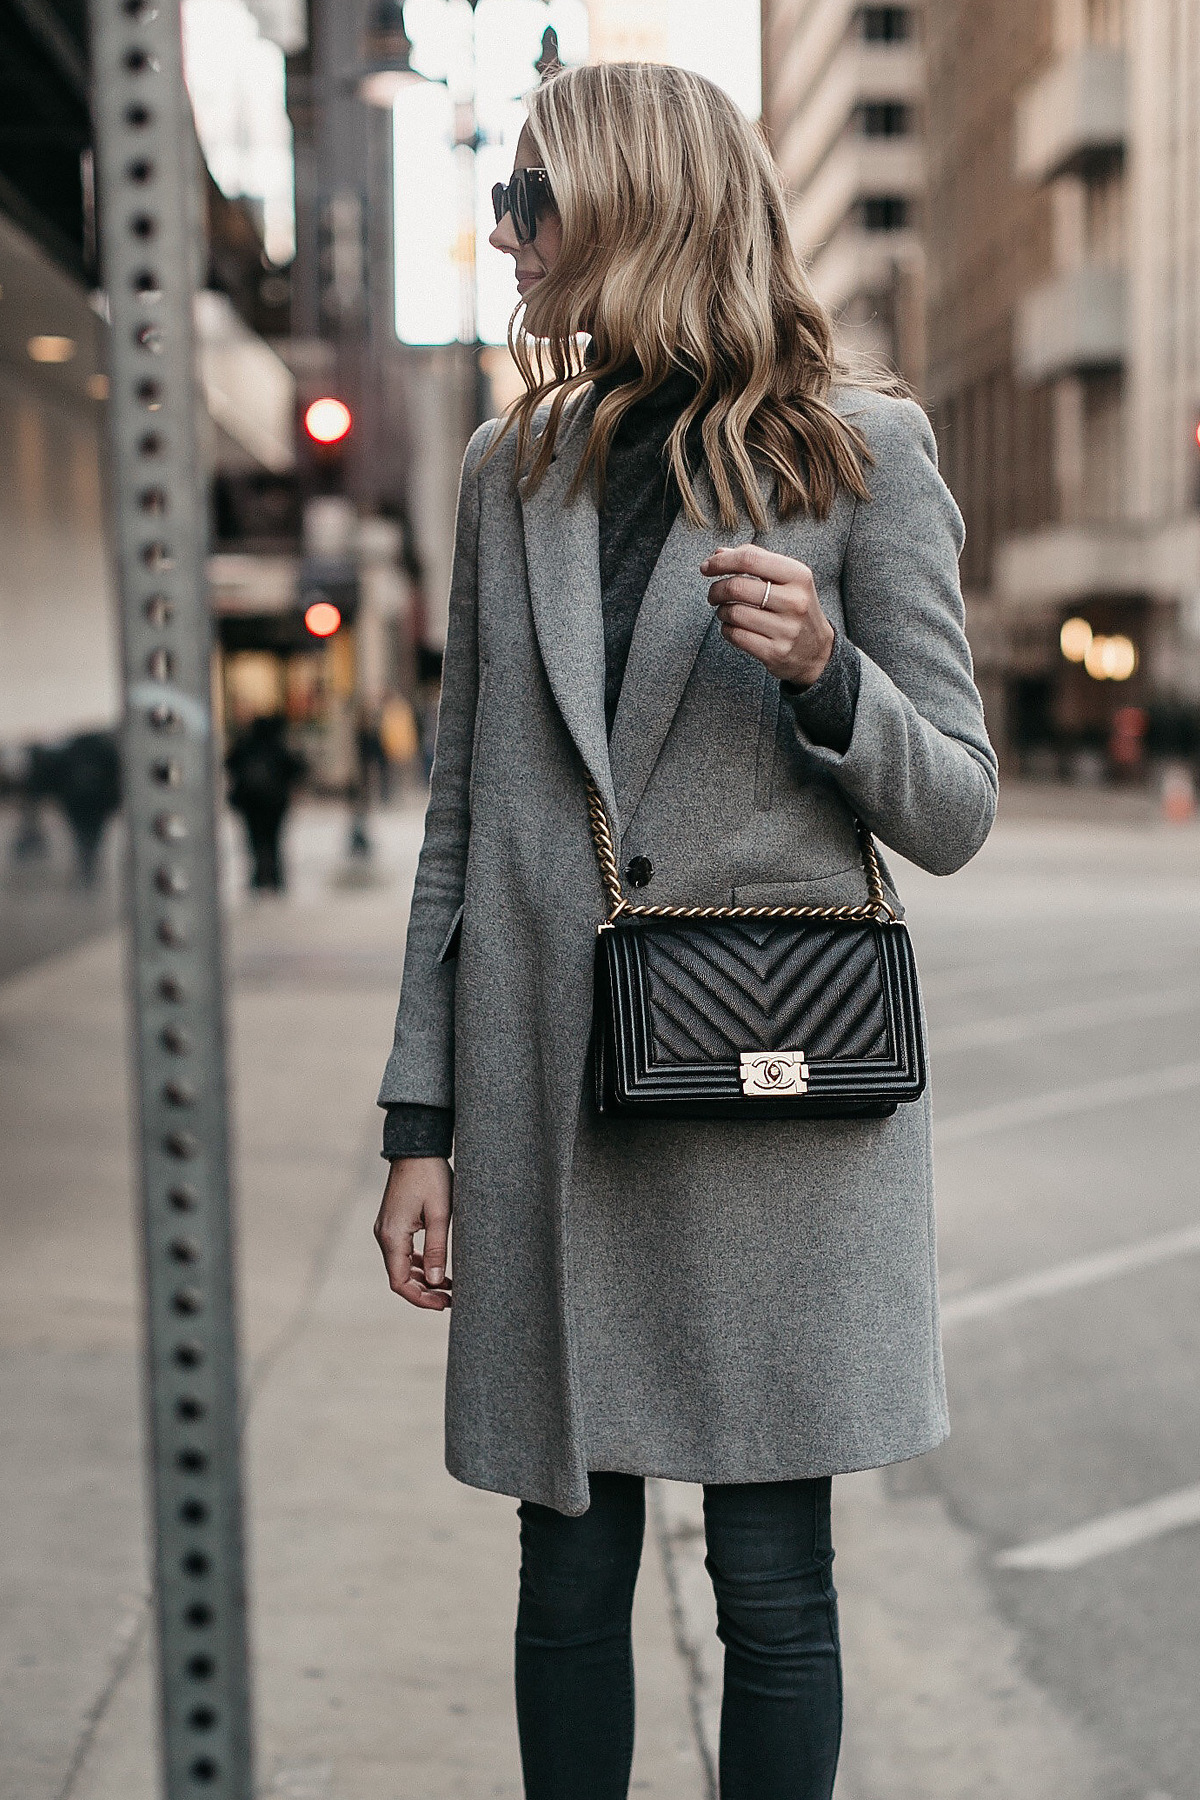 Blonde Woman Wearing Grey Coat Grey Turtleneck Sweater Black Chanel Boy Bag Fashion Jackson Dallas Blogger Fashion Blogger Street Style